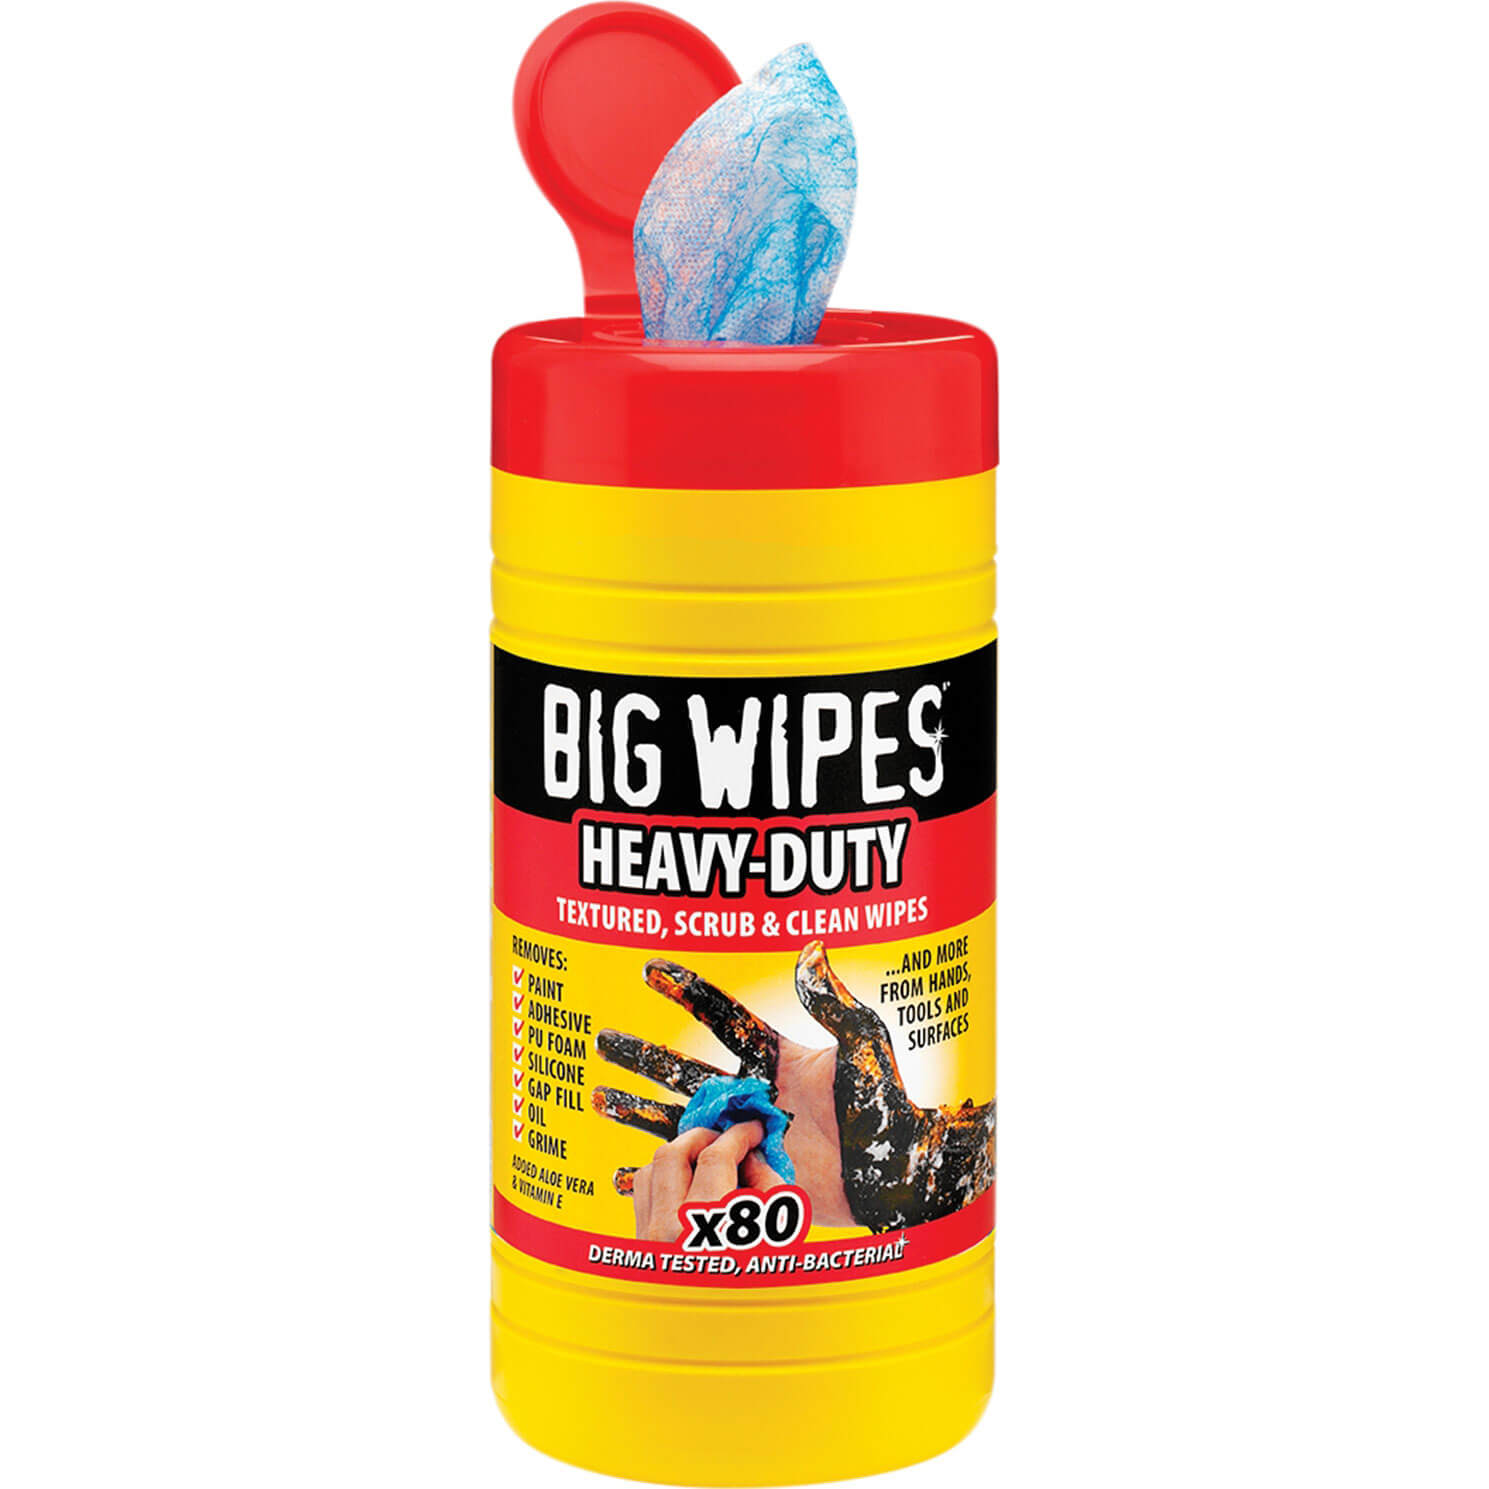 Big Wipes Industrial Plus Cleaning Wipes Tub of 80 Wipes